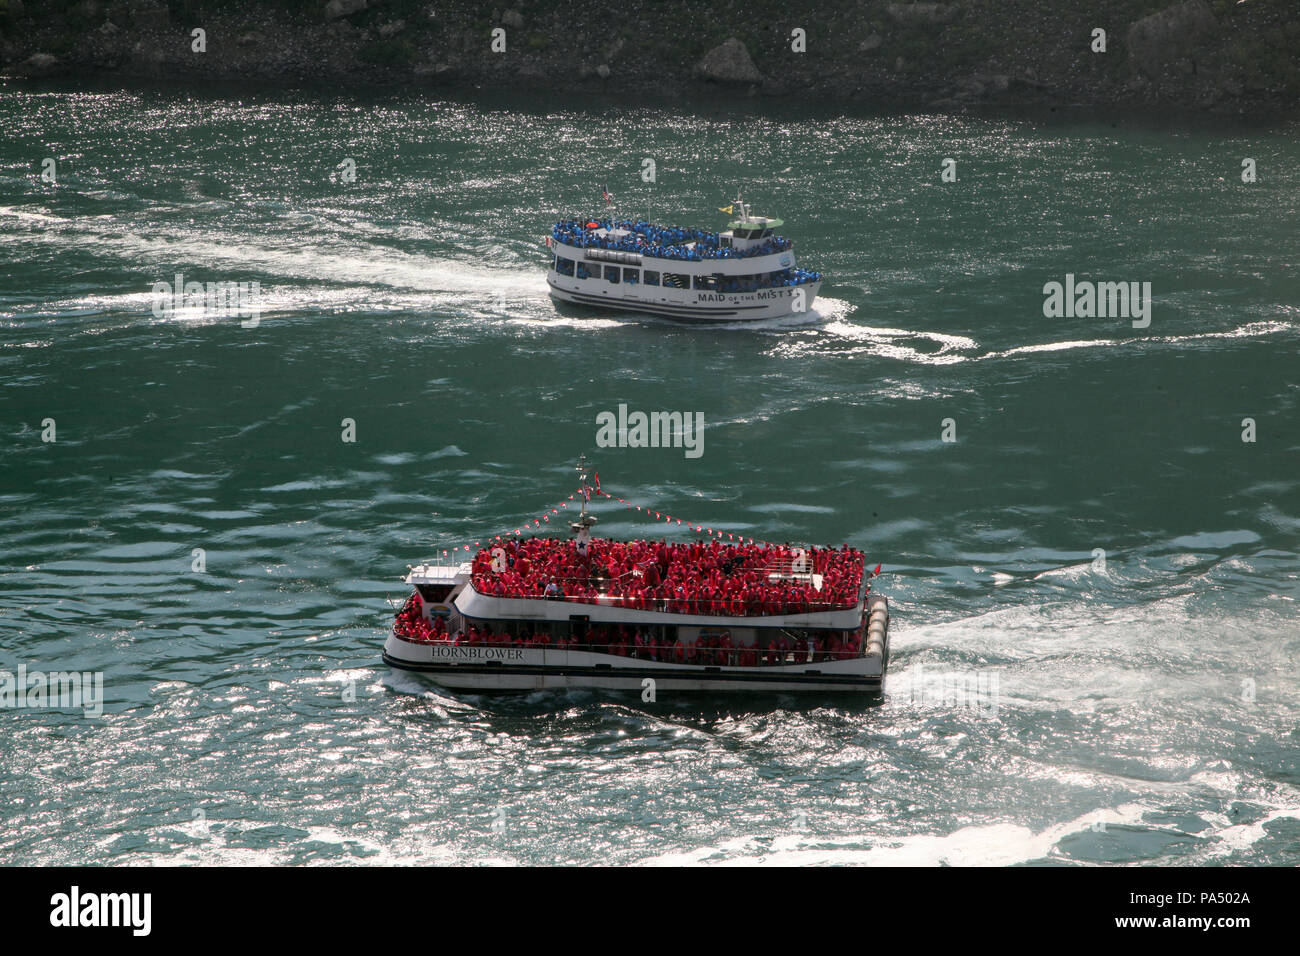 The Maid of The Mist VI & The Hornblower tourist boats at Niagara Falls, Ontario, Canada - Stock Image